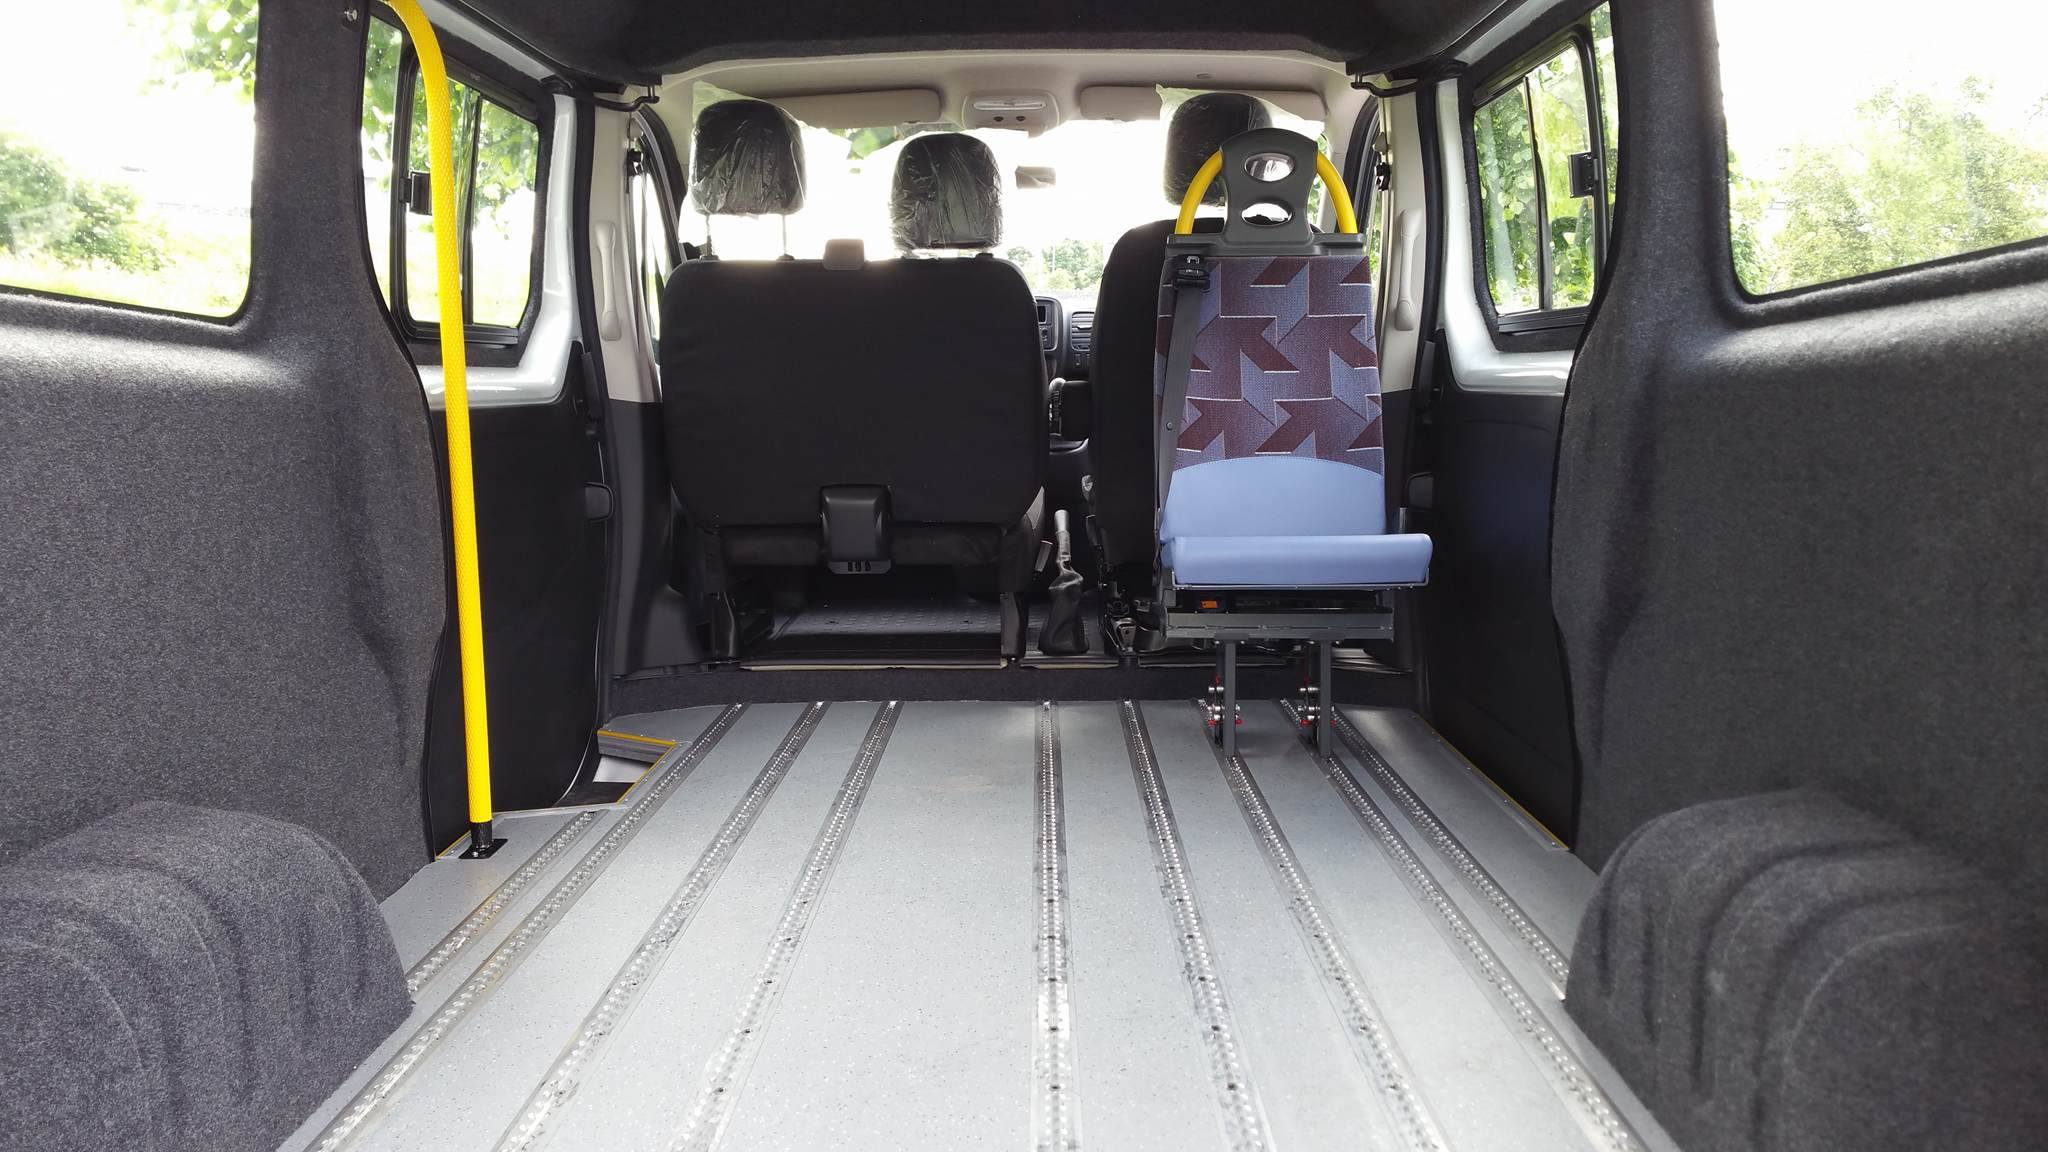 Parfit Mobility Experts For Wheelchair Cars In Ireland Ccessi